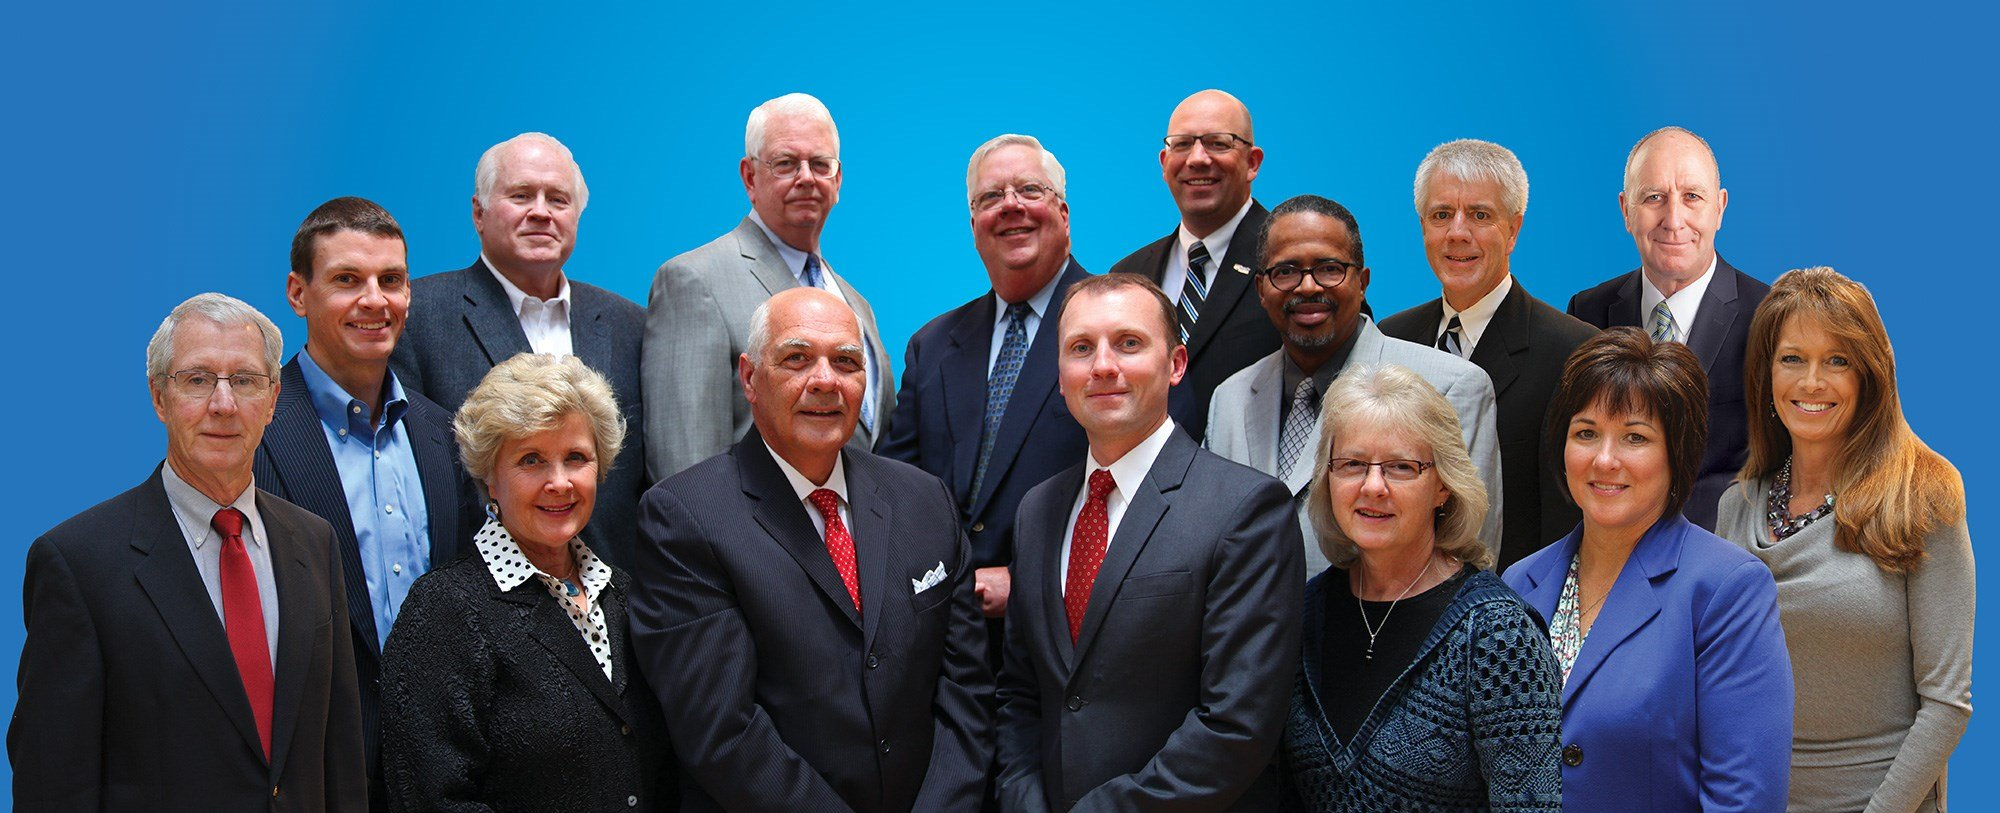 Waterloo Community Foundation Board of Directors